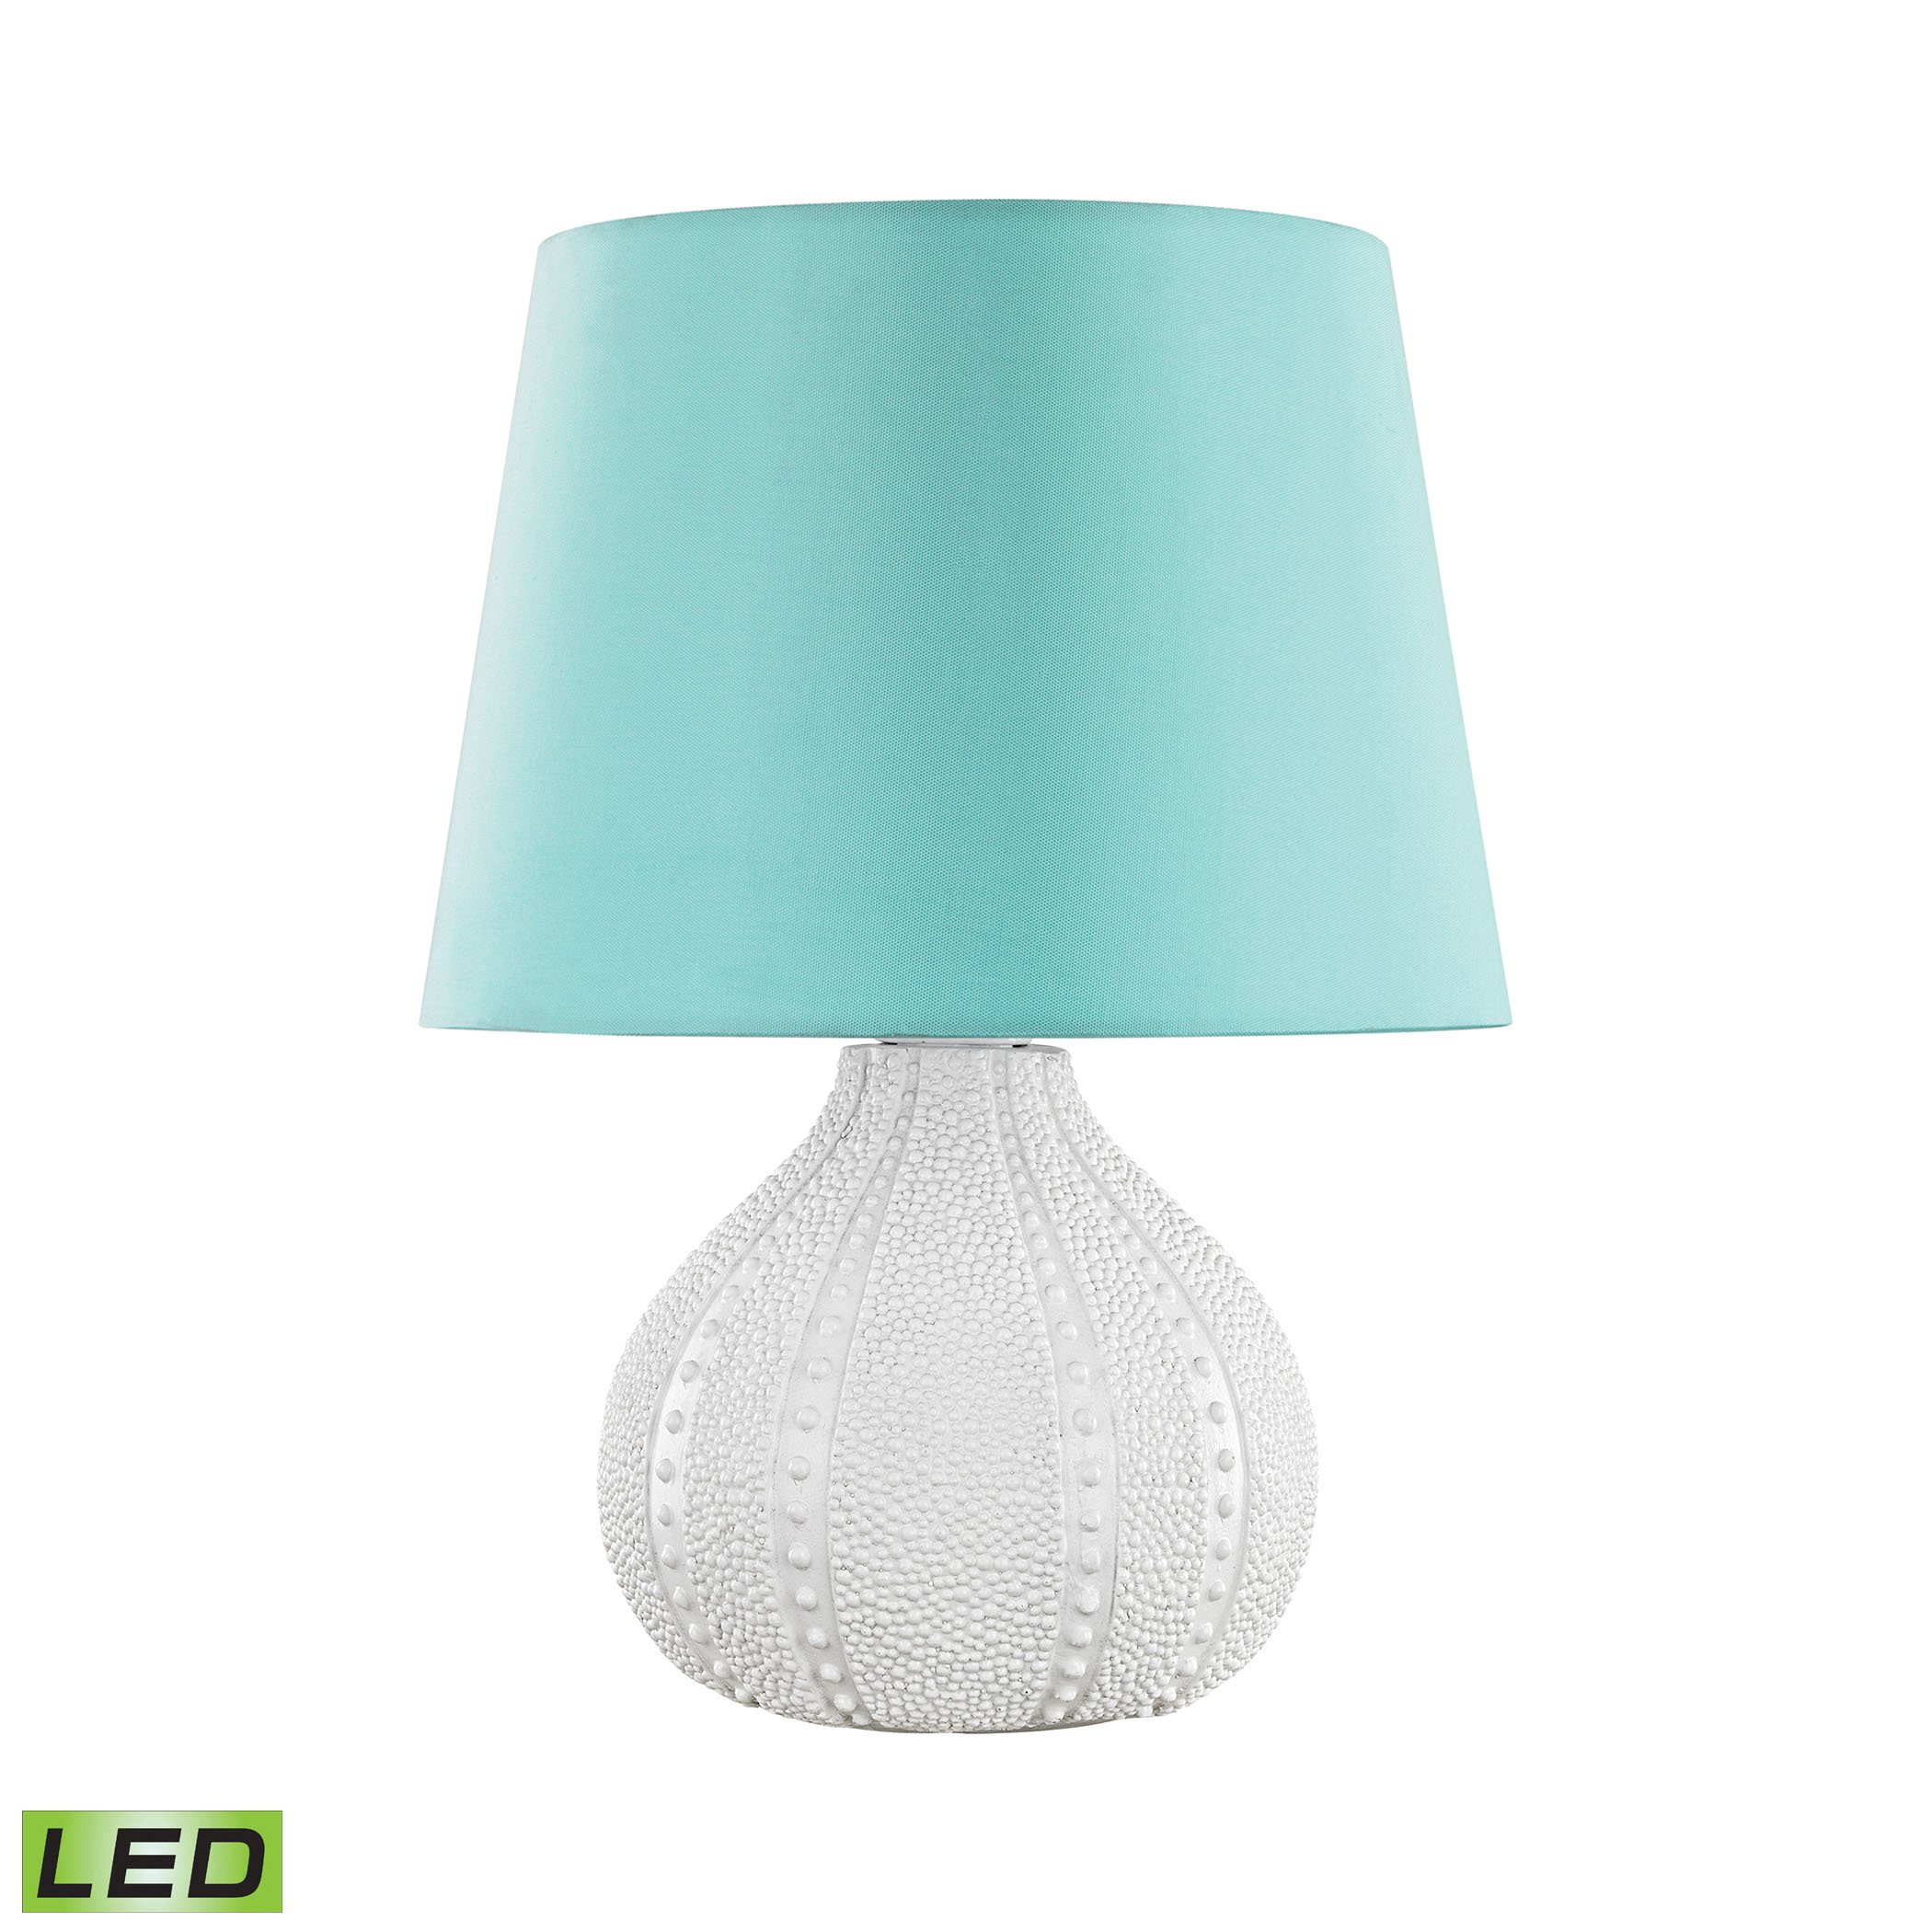 Aruba Outdoor LED Table Lamp With Sea Green Shade by AR Lighting